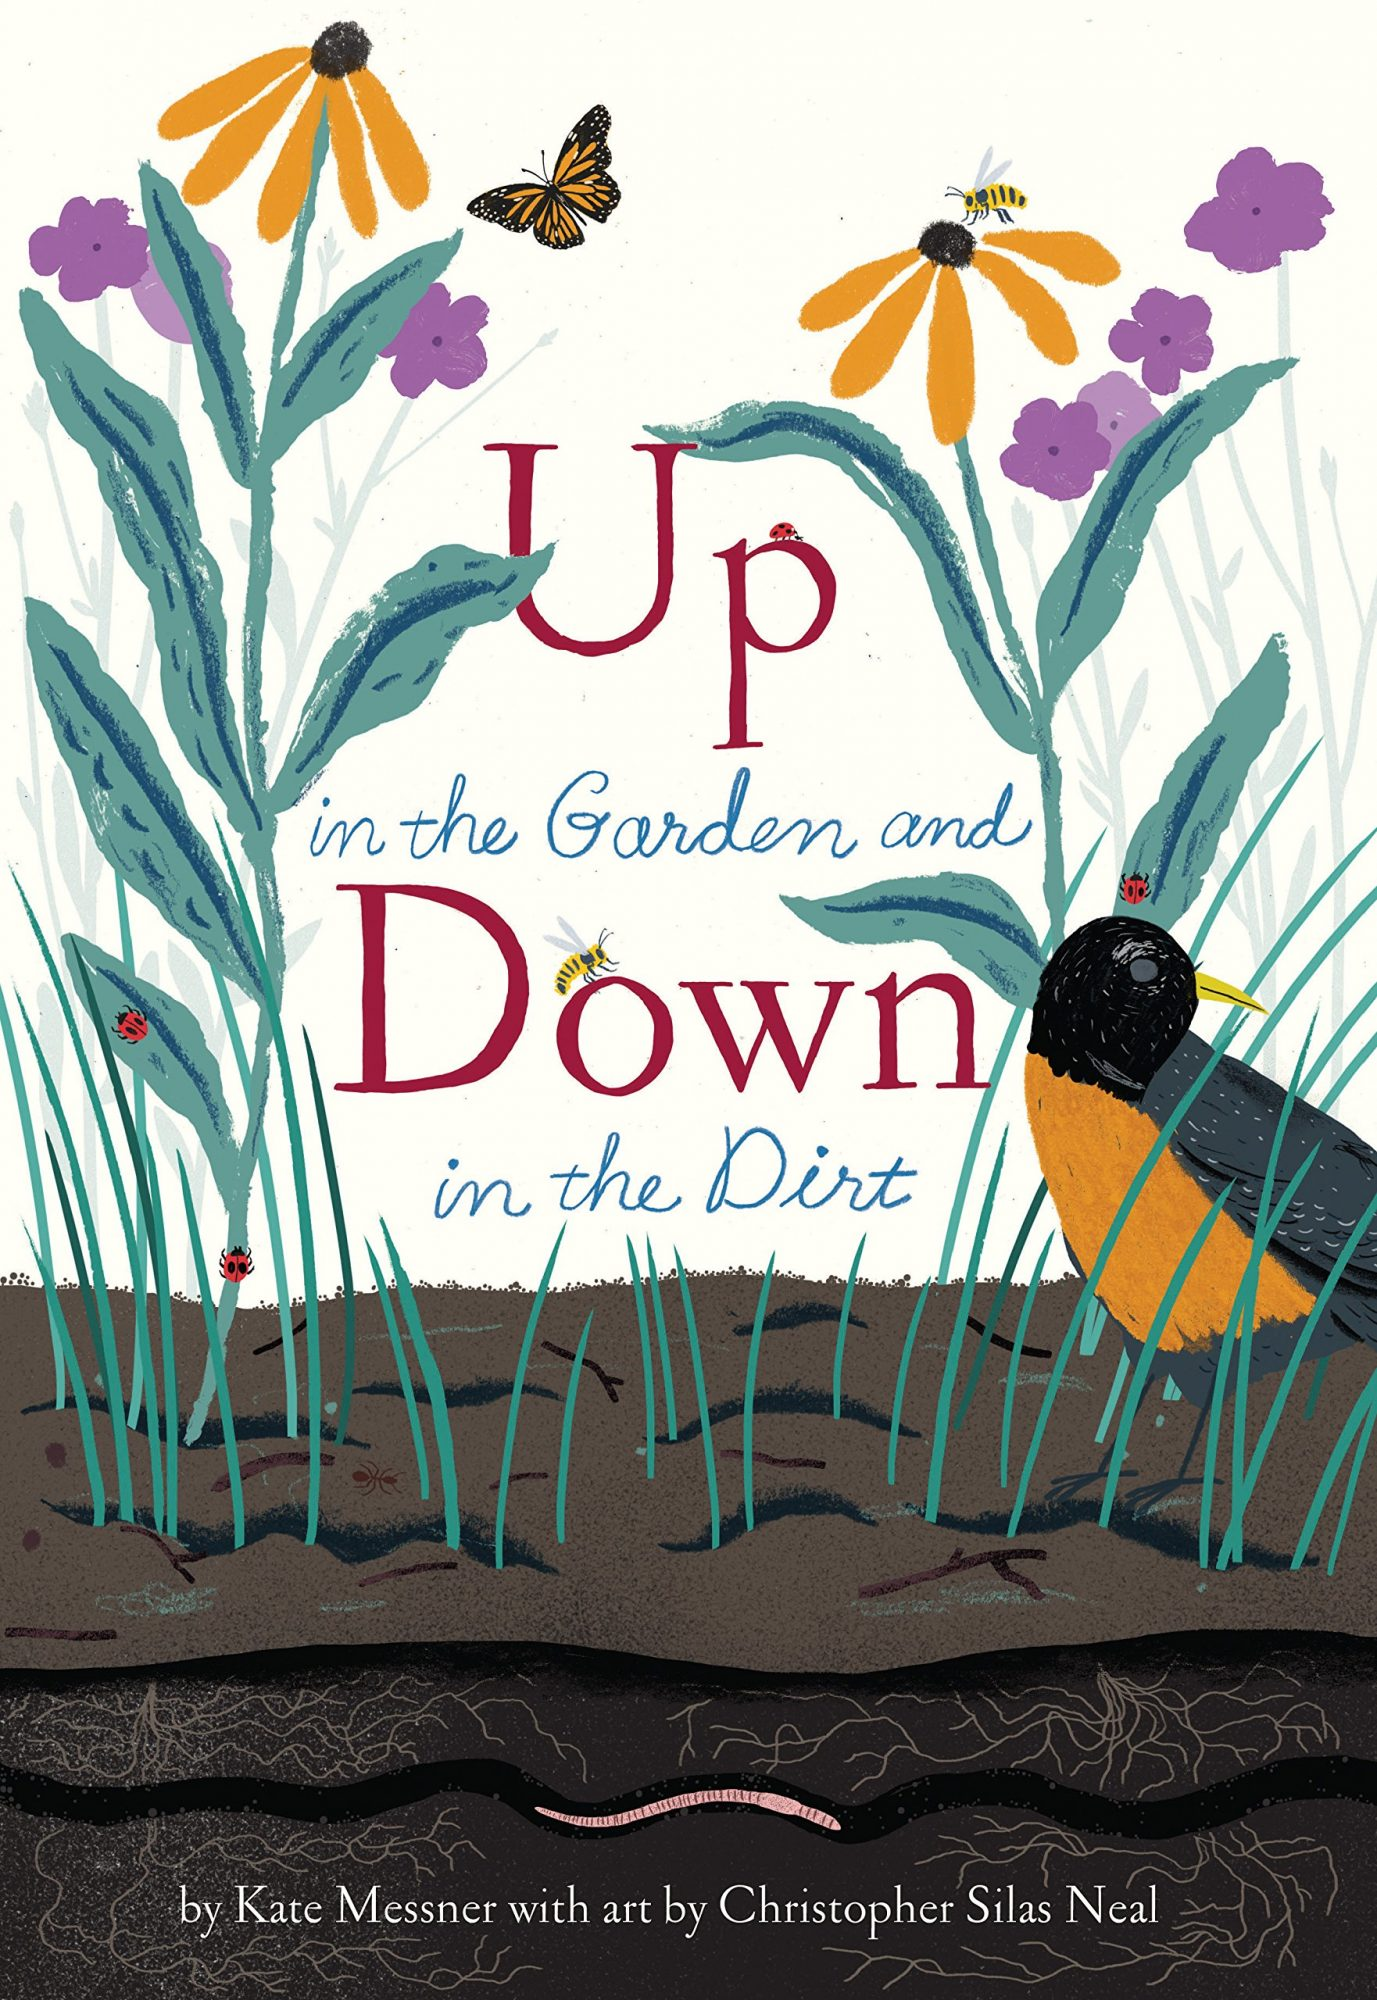 Up in the Garden and Down in the Dirt by Kate Messner and Christopher Silas Neal